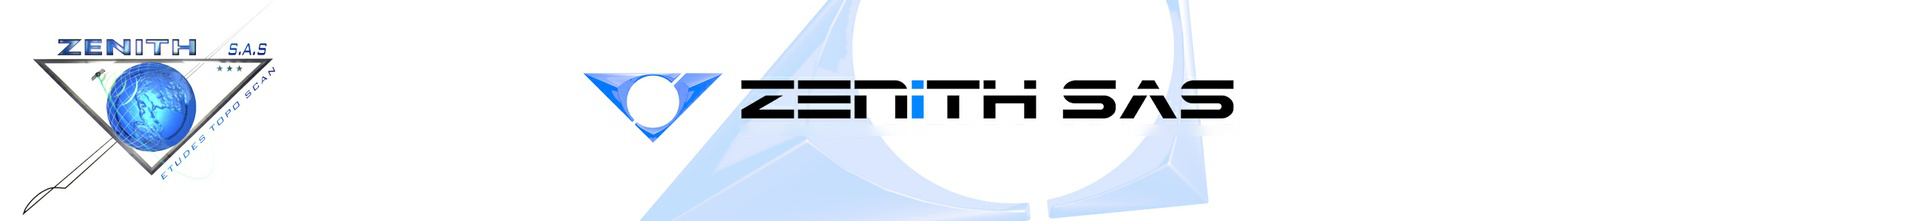 Zenith World new Logo